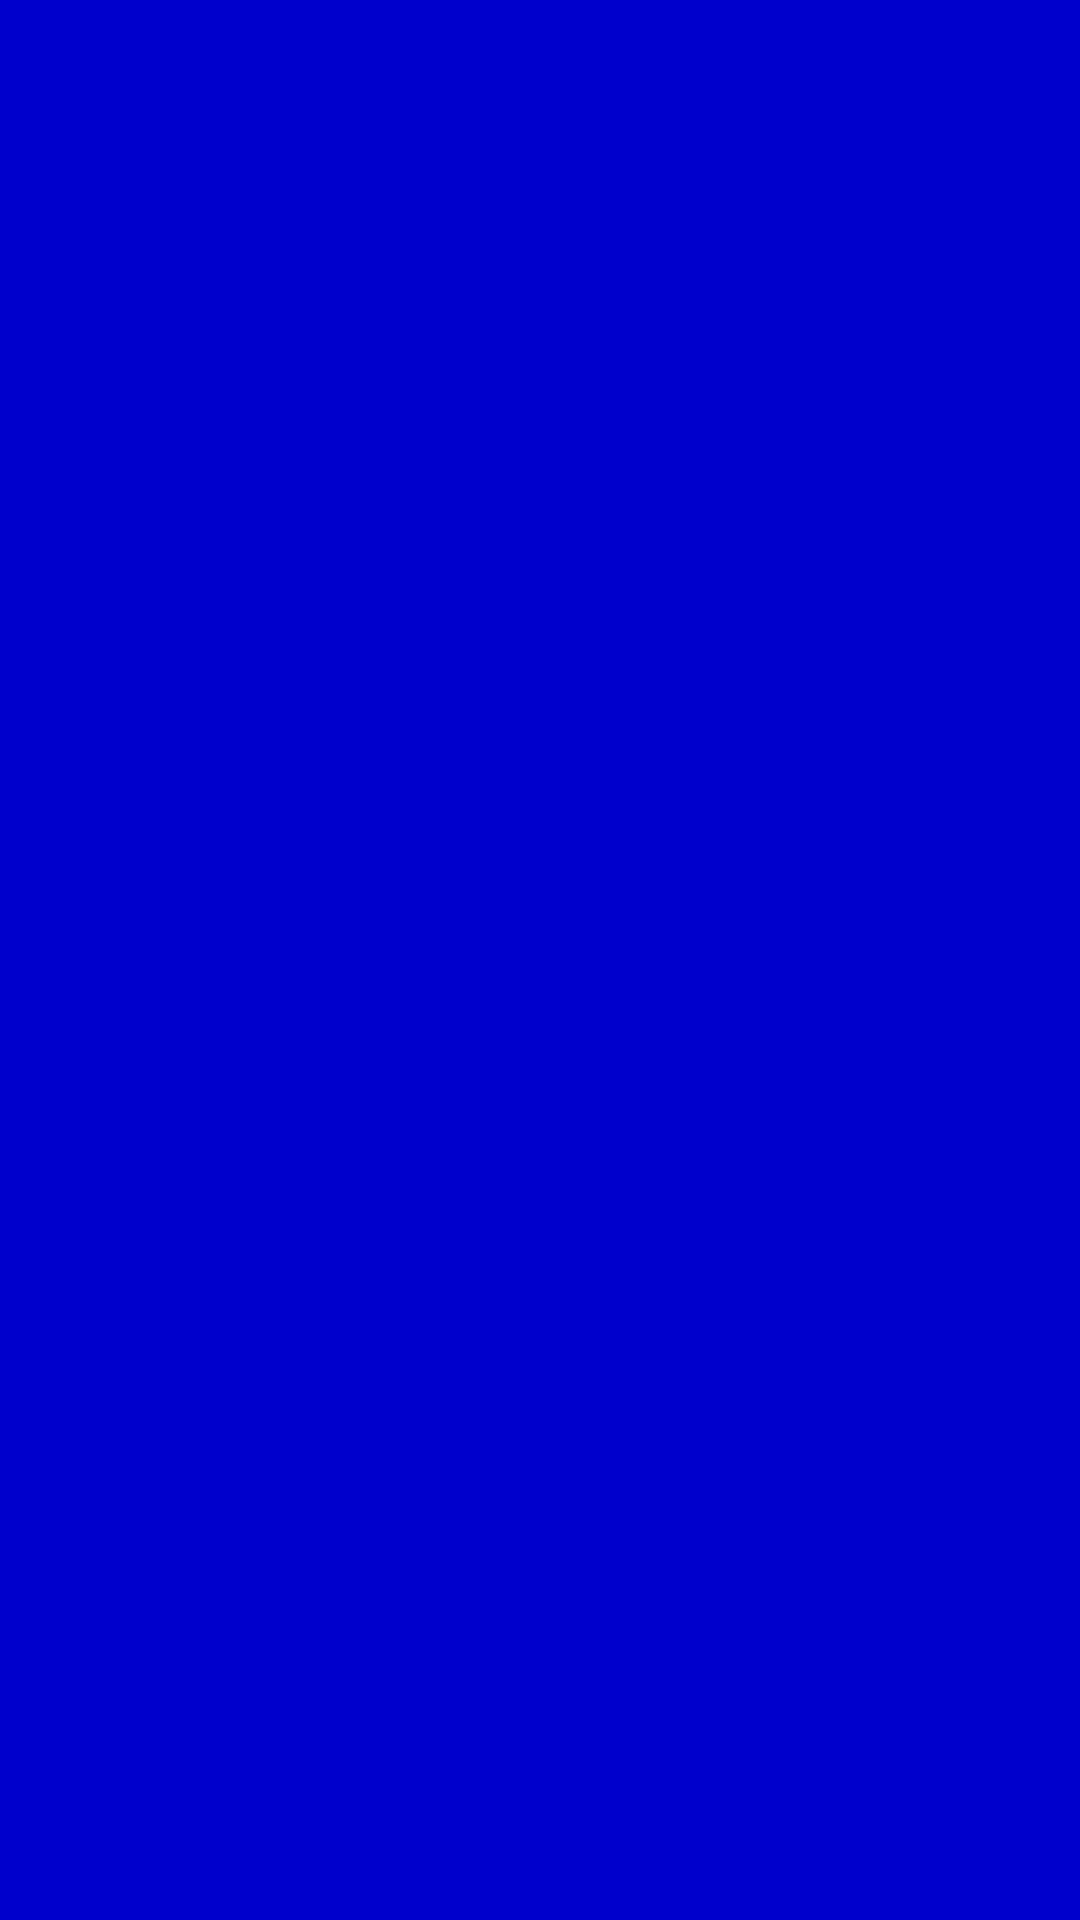 1080x1920 Medium Blue Solid Color Background